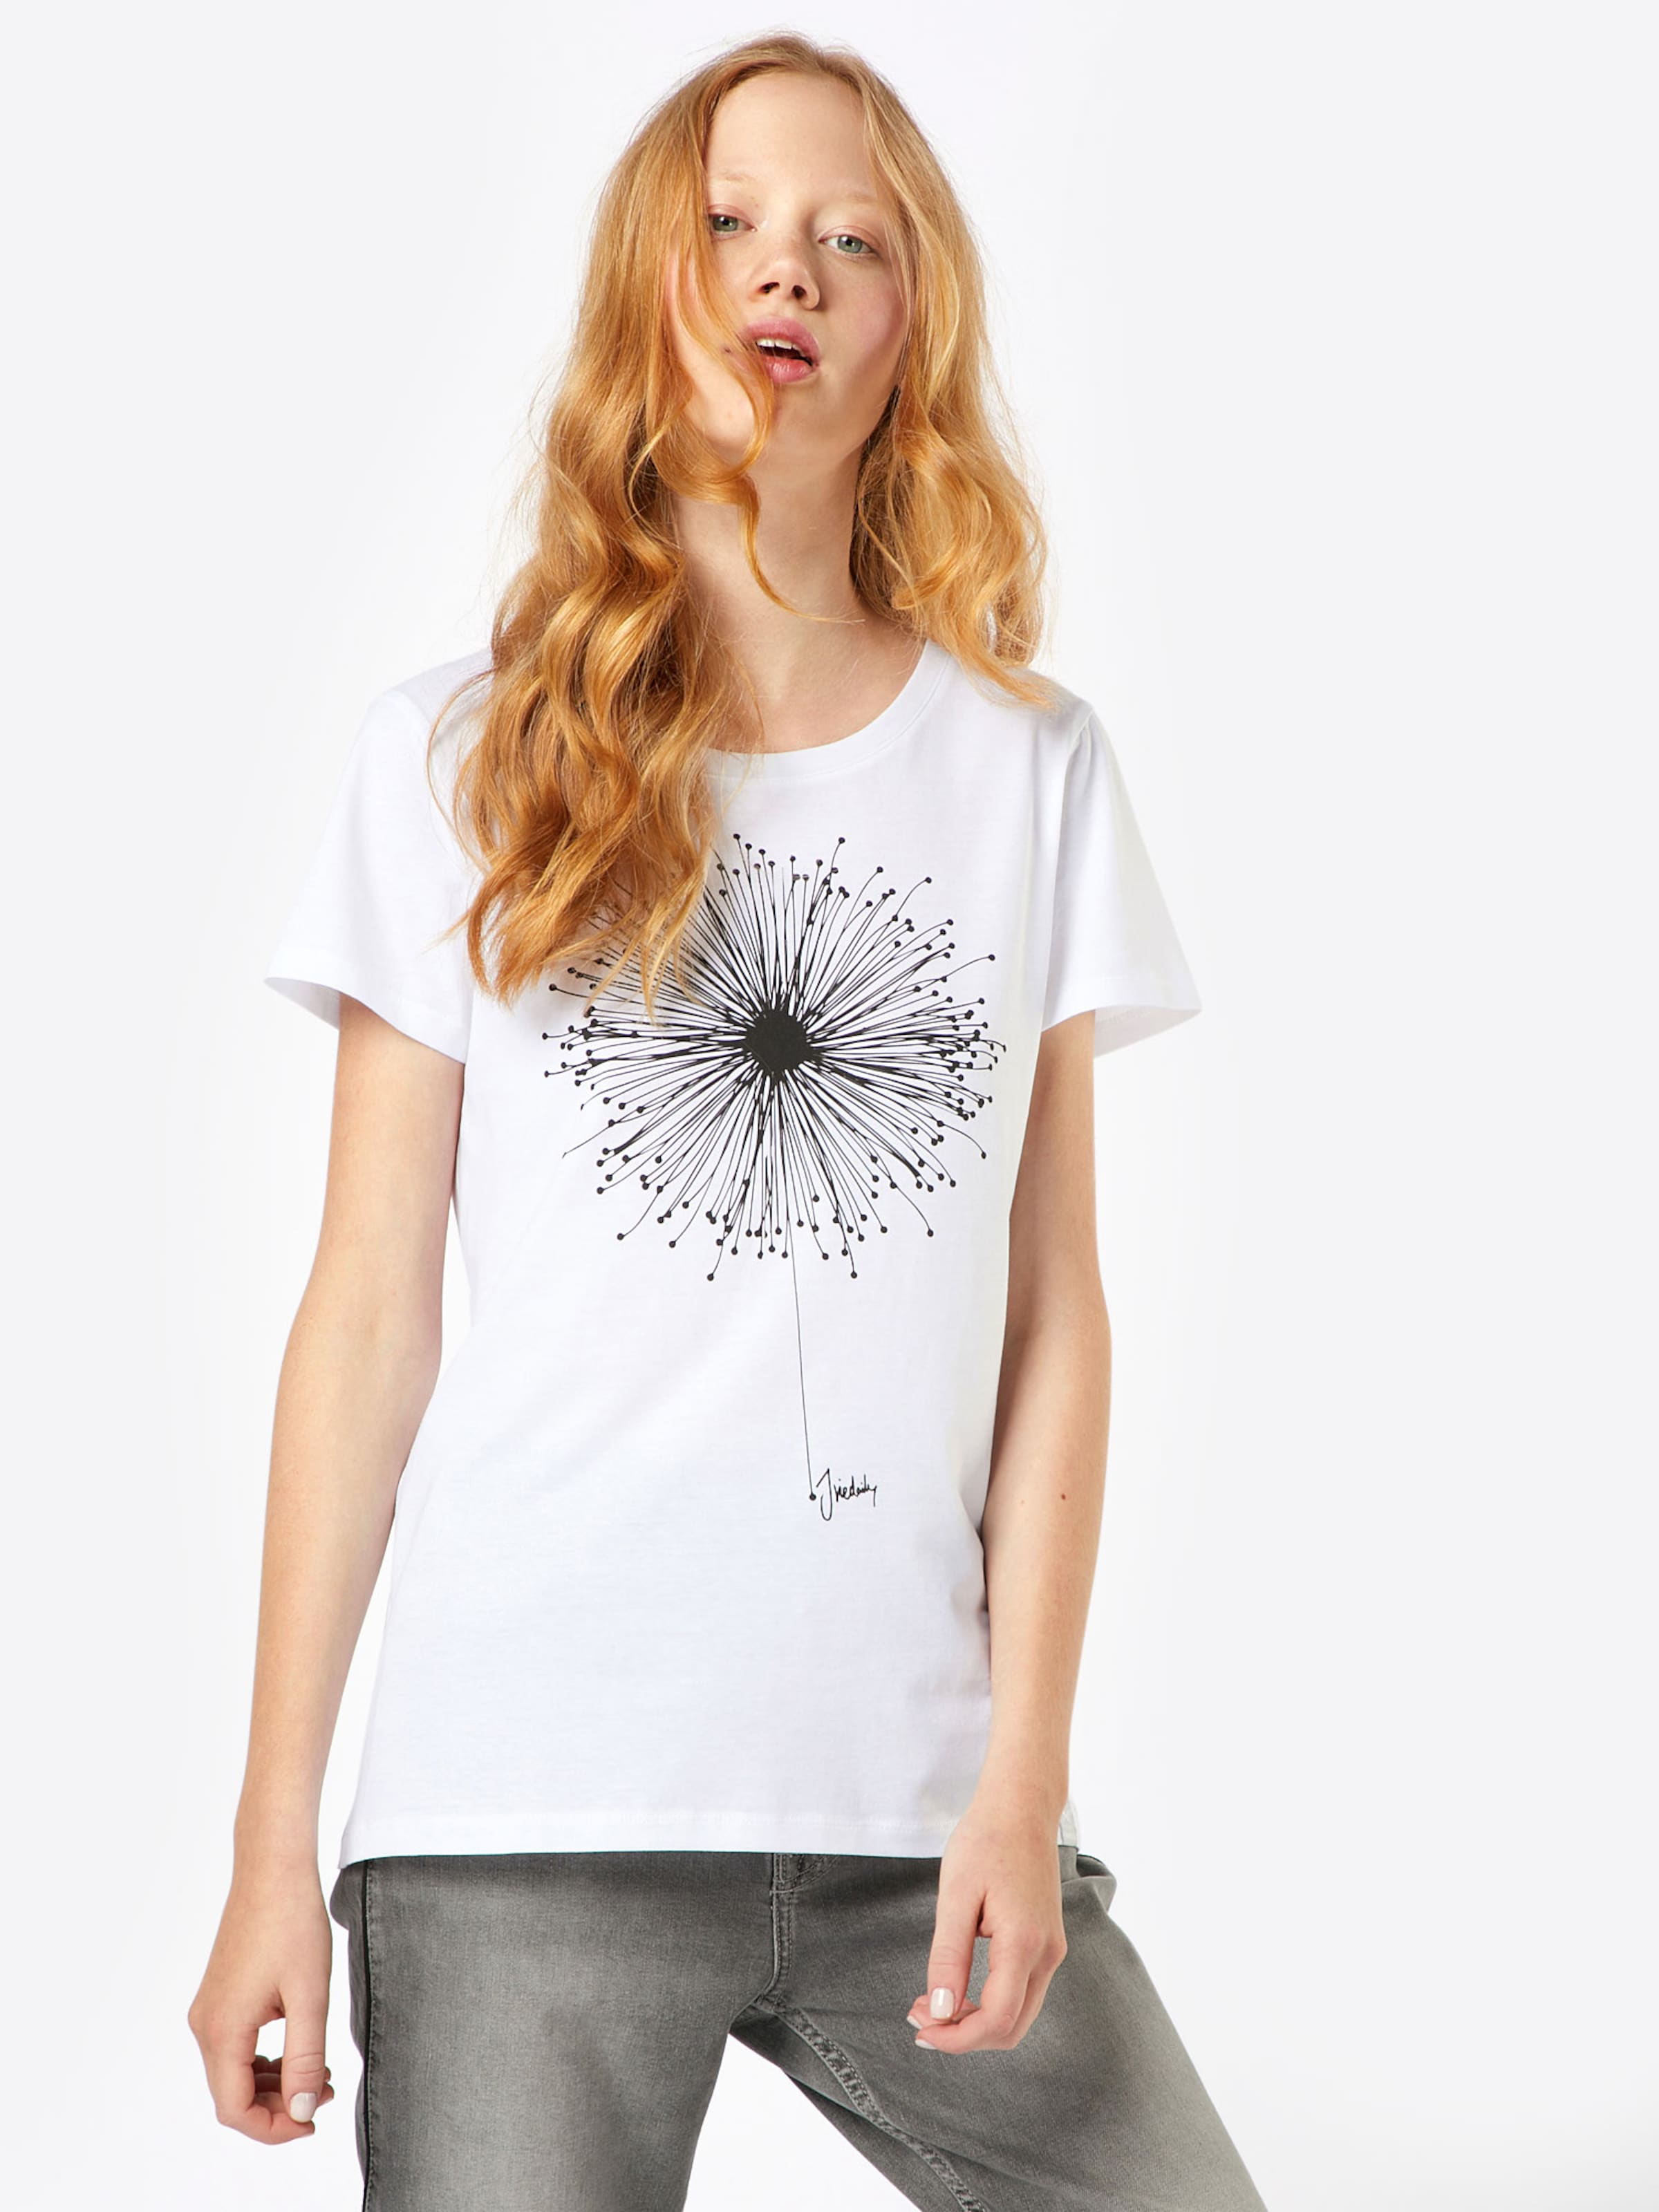 Iriedaily 'blowball' Shirt In Shirt Shirt Iriedaily 'blowball' Wit Wit Iriedaily In QoxBtsrdCh